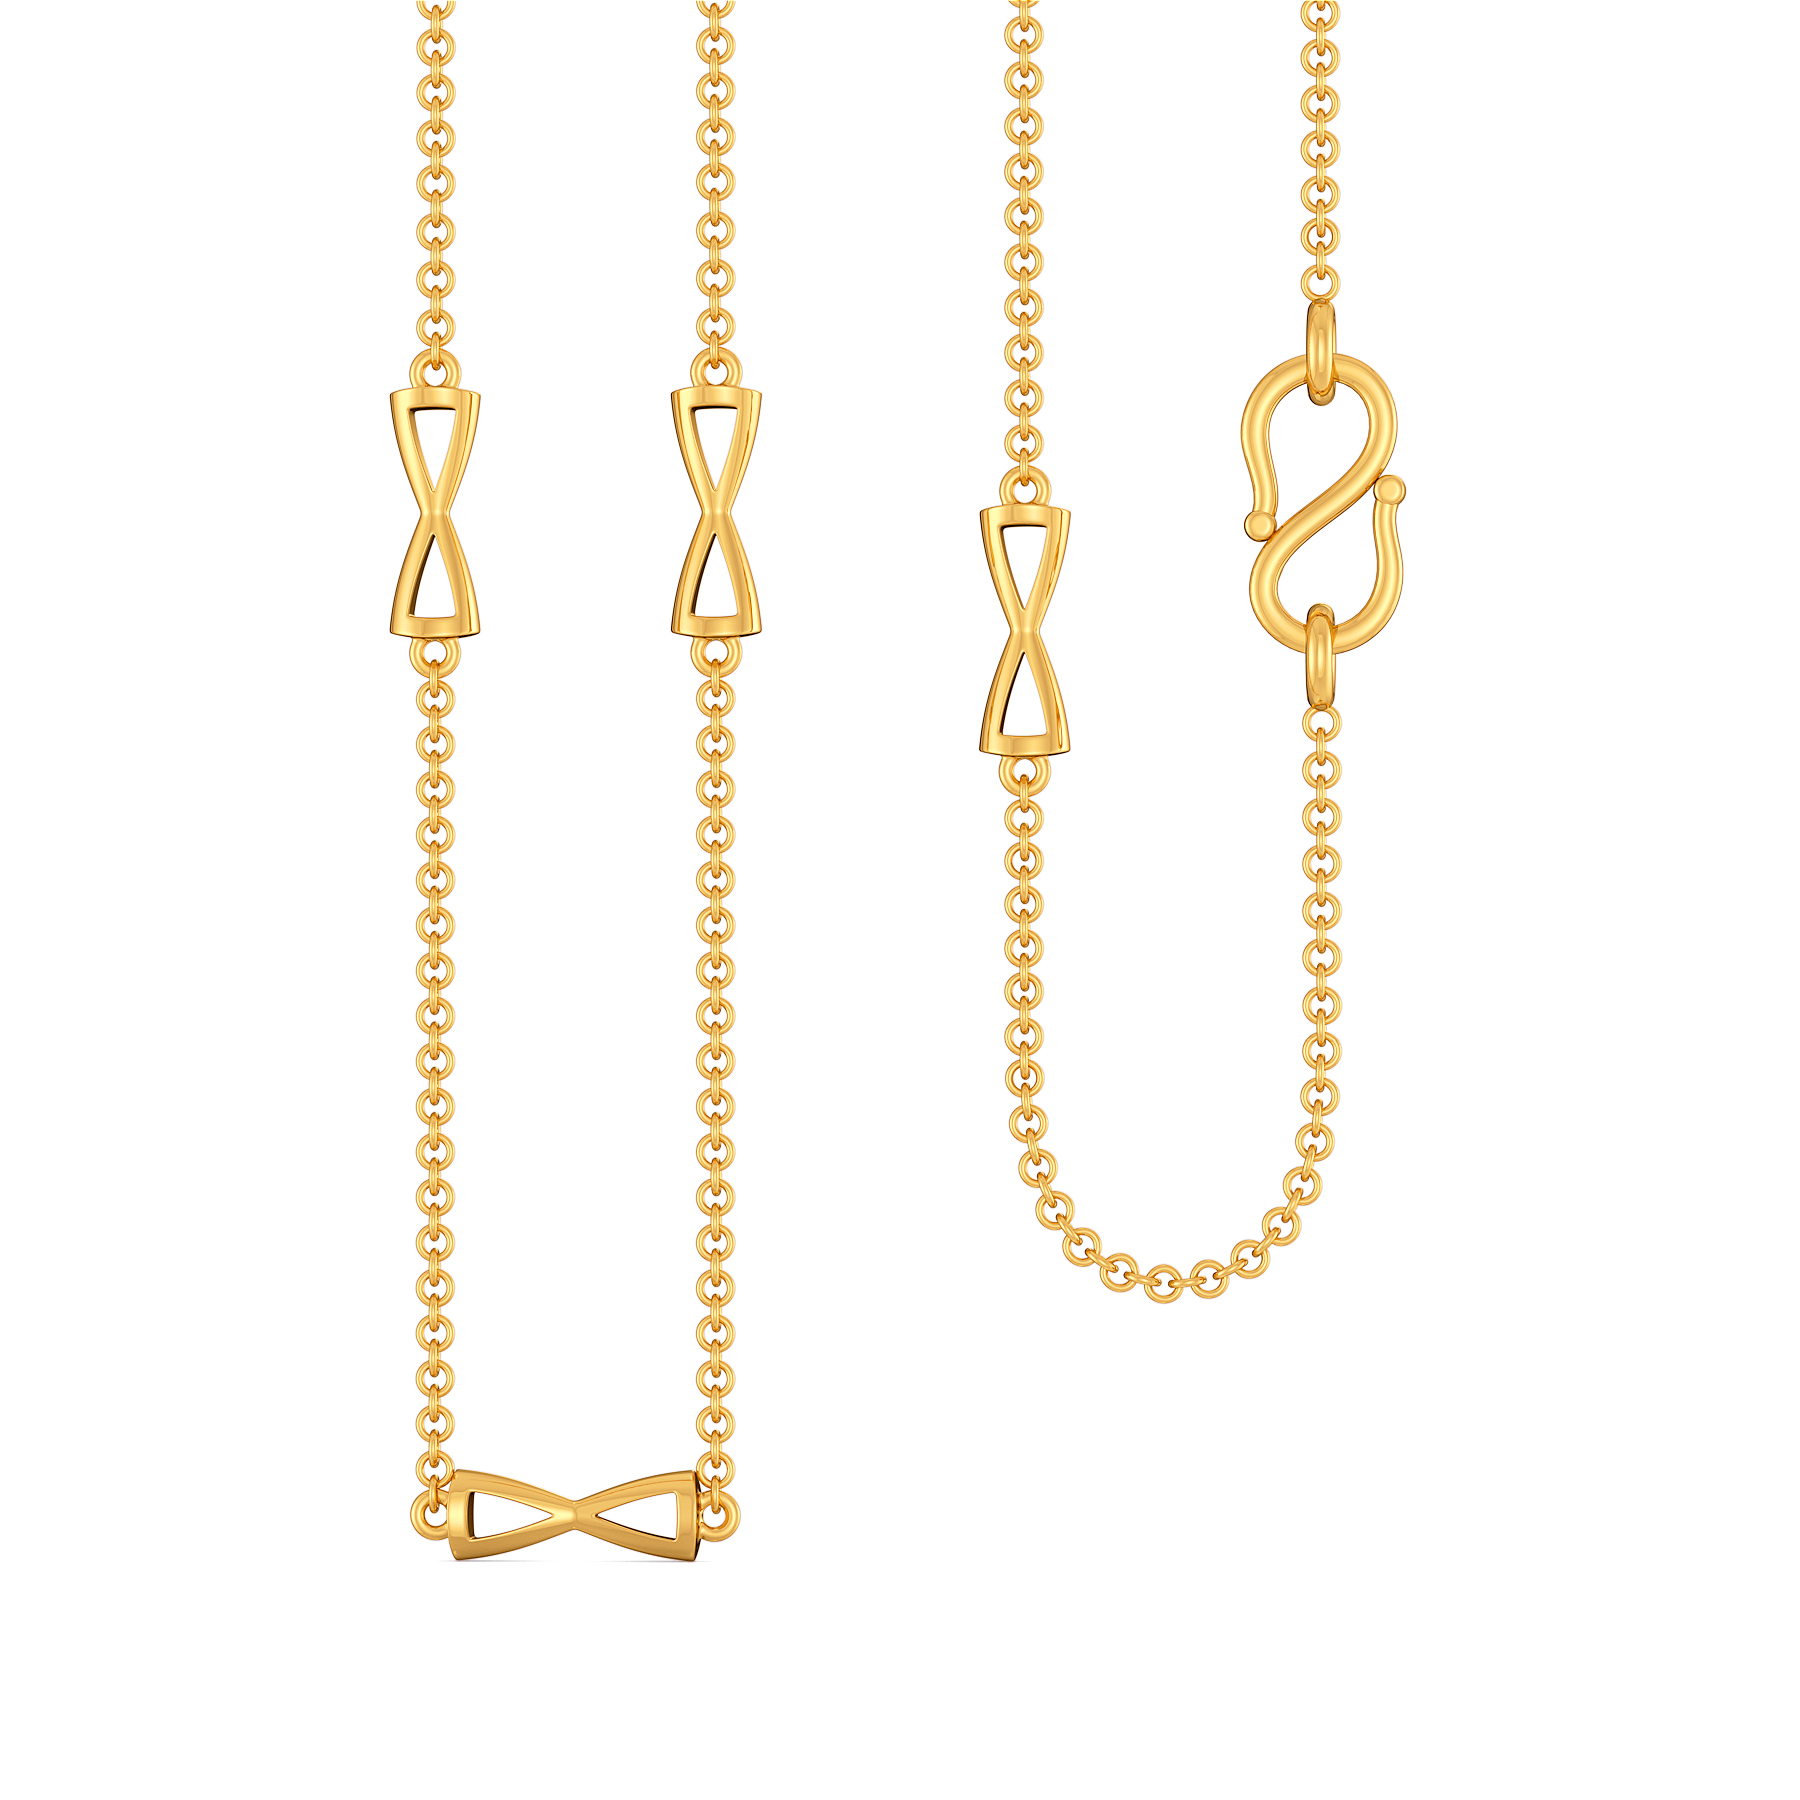 Bow Knots Gold Chains